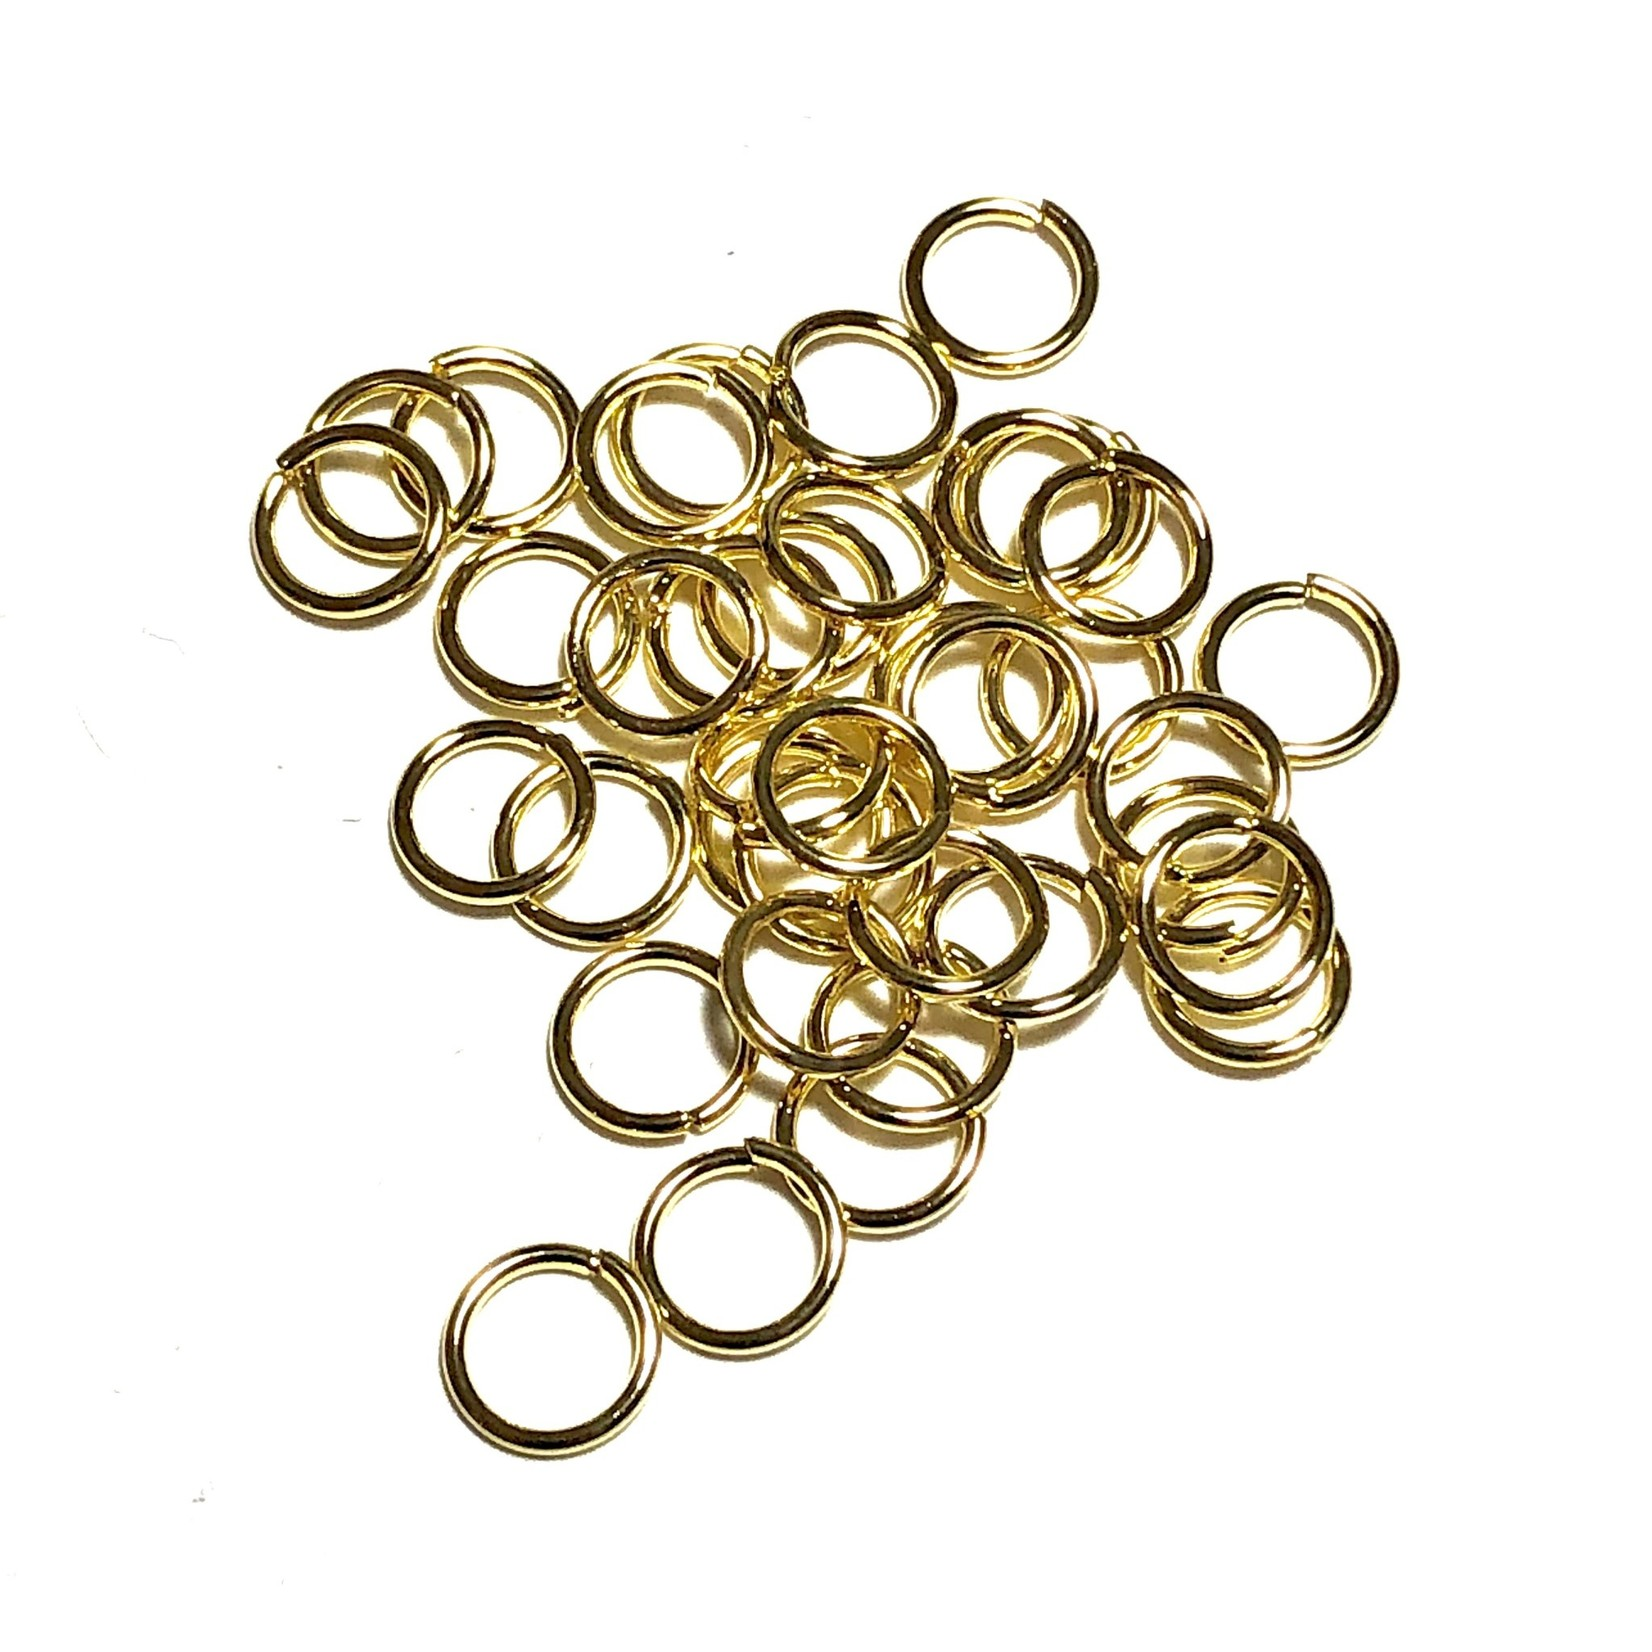 Gold Plated Jump Rings 8mm OD 60pcs